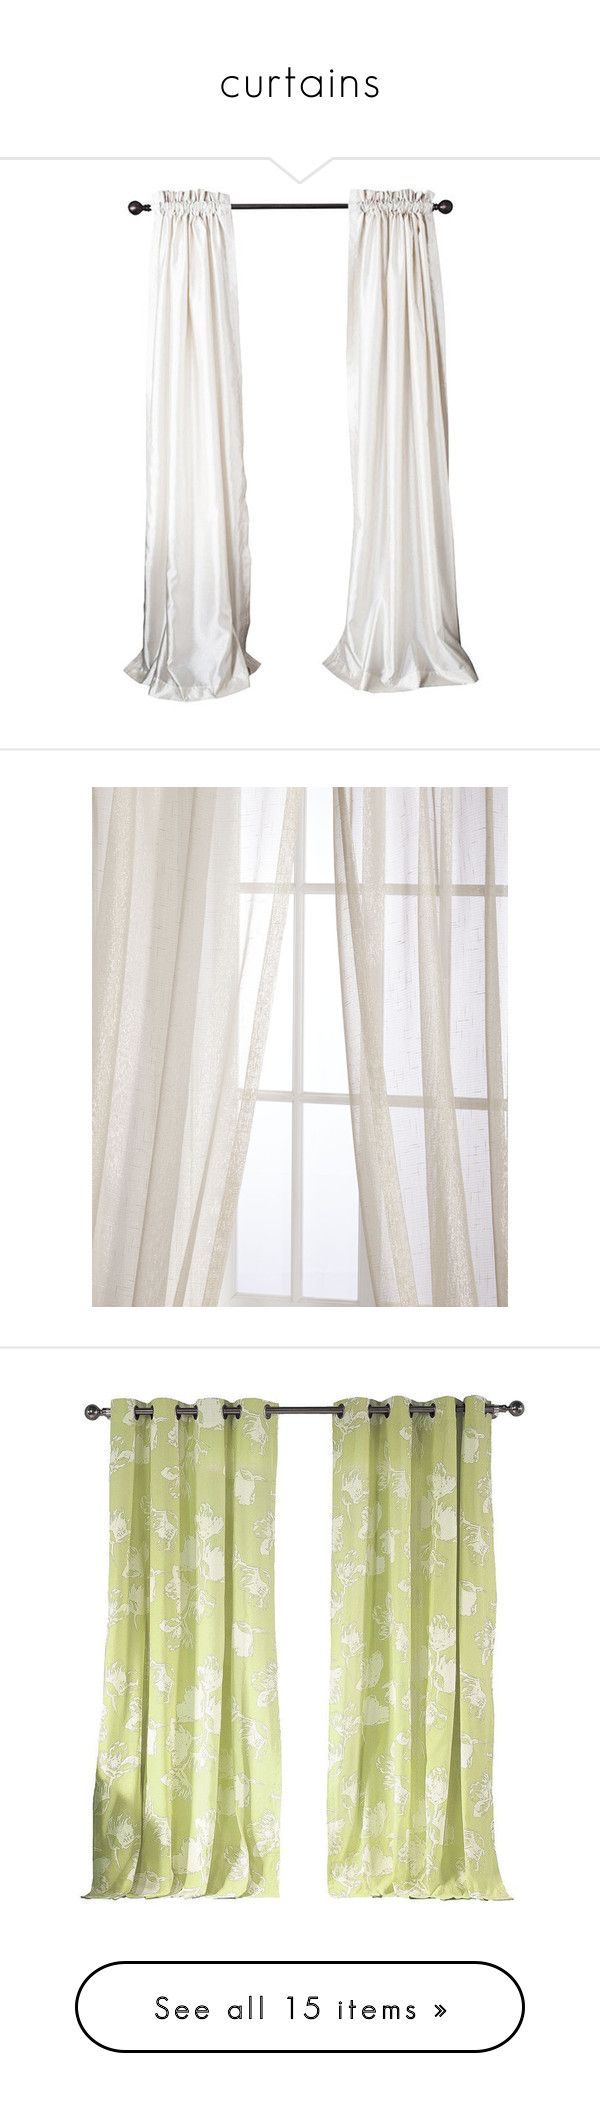 """""""curtains"""" by khloodbarayan ❤ liked on Polyvore featuring home, home decor, window treatments, curtains, faux silk curtains, beige curtain panels, pole top curtains, rod pocket curtains, faux silk window panel and champagne"""